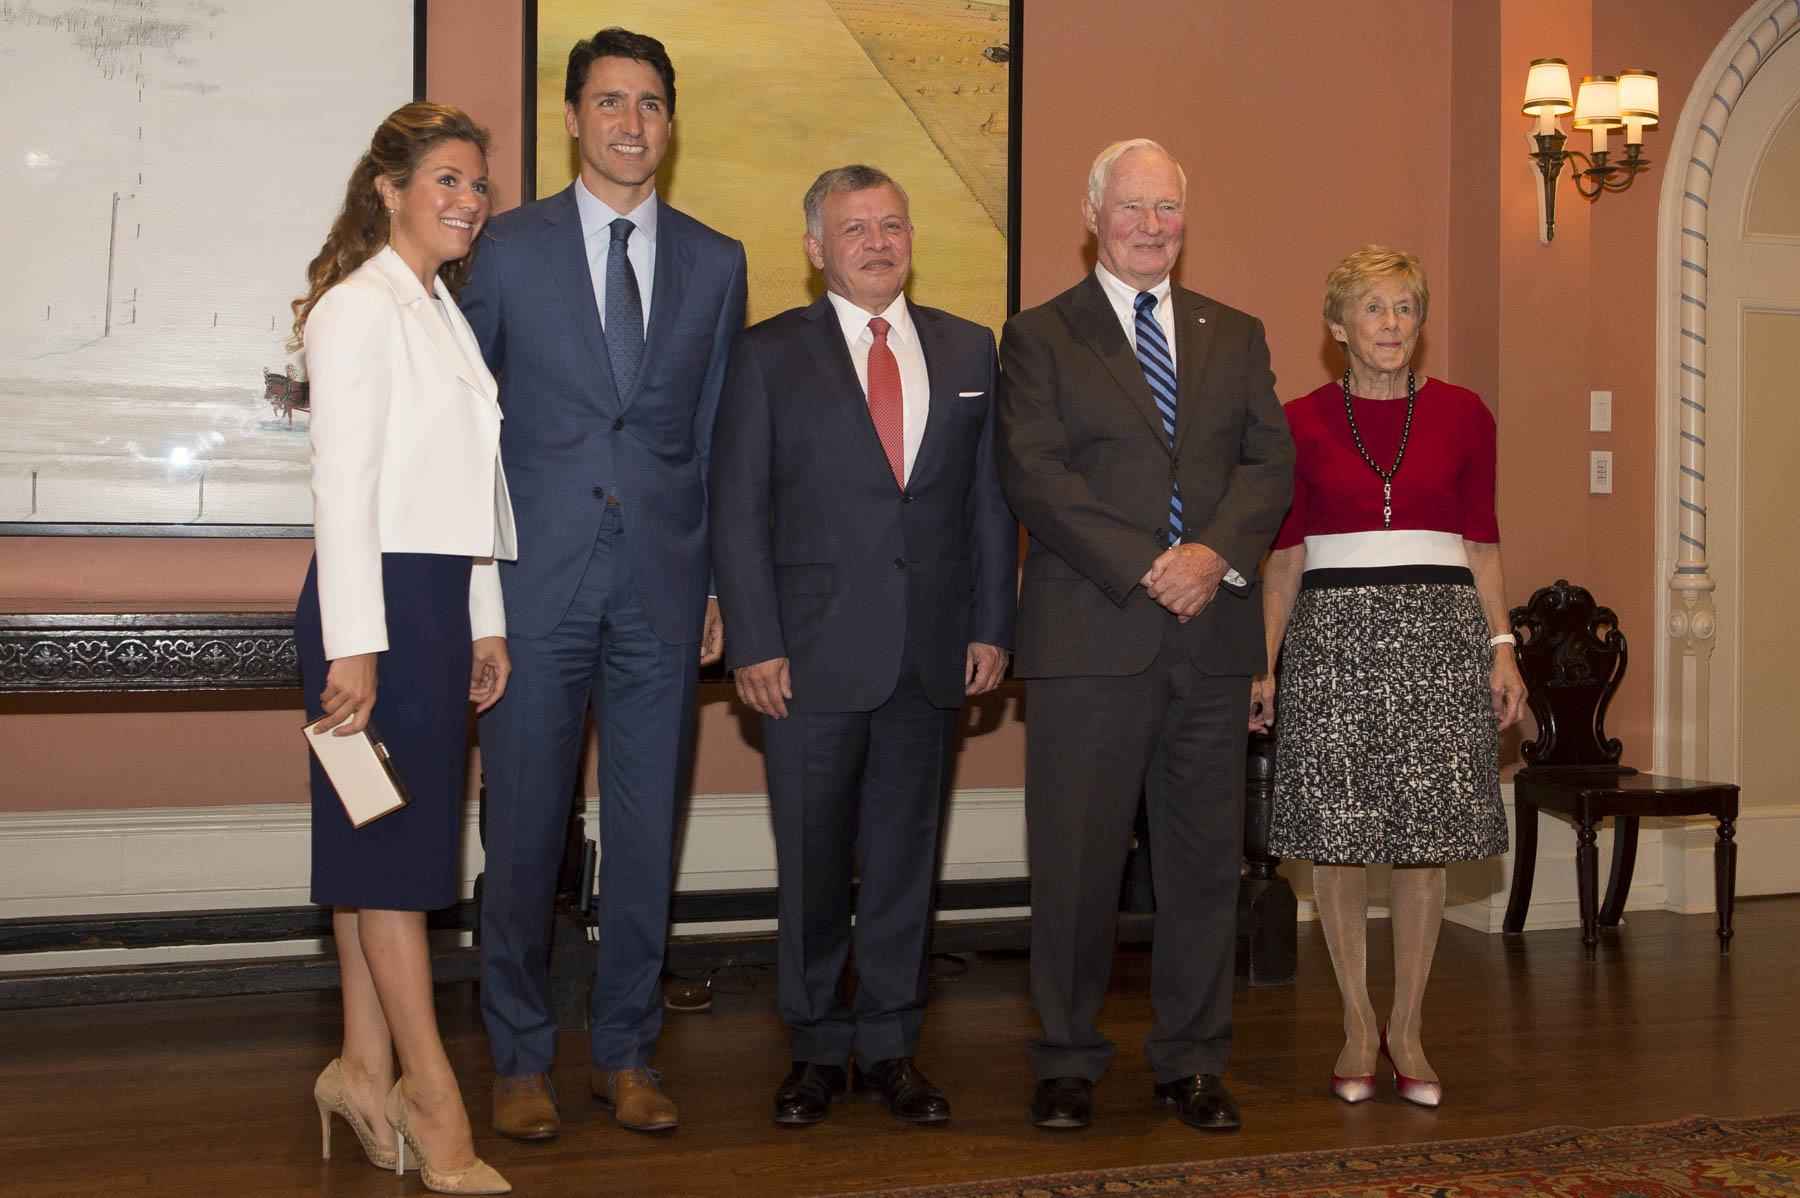 On August 29, 2017, Their Excellencies hosted a State luncheon at Rideau Hall in honour of His Majesty's visit to Canada. In attendance were the Right Honourable Justin Trudeau, Prime Minister of Canada, and Mrs. Sophie Grégroire-Trudeau.